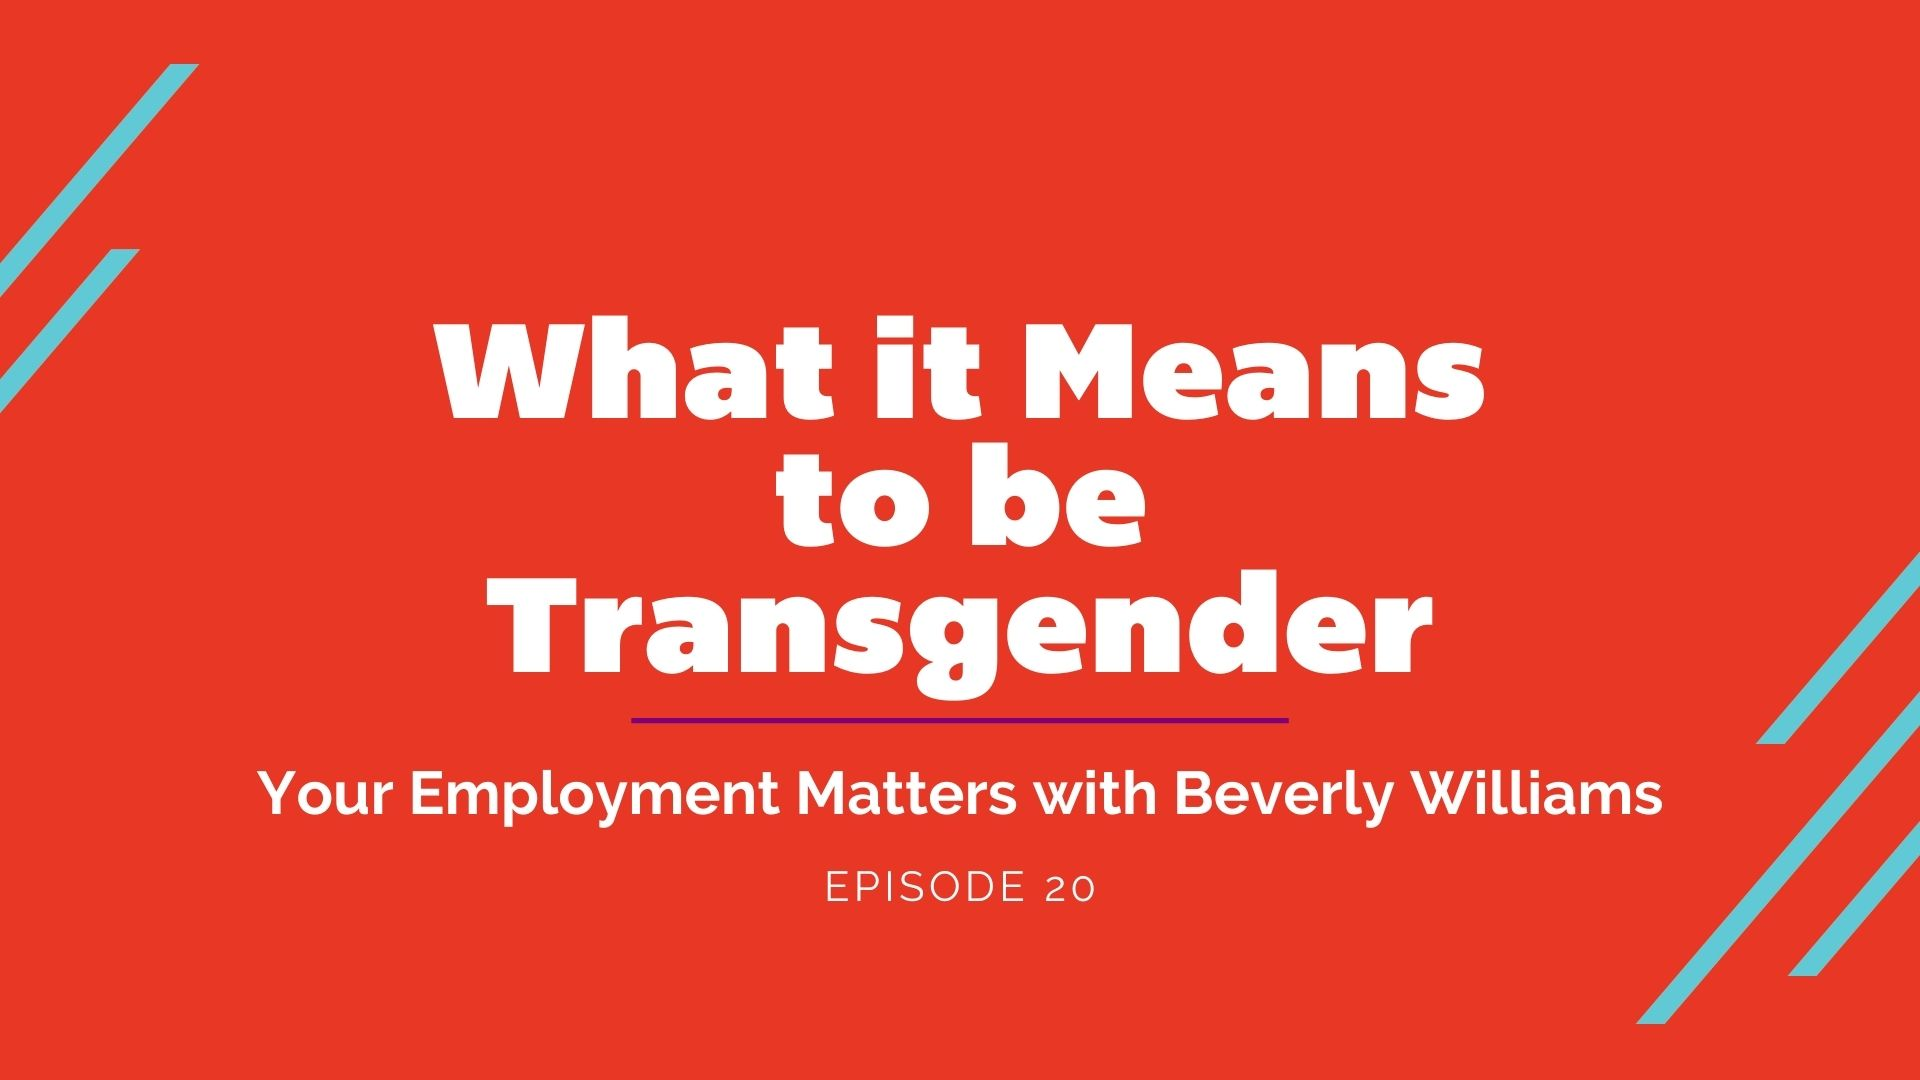 What Does it Mean to be Transgender? - Your Employment Matters